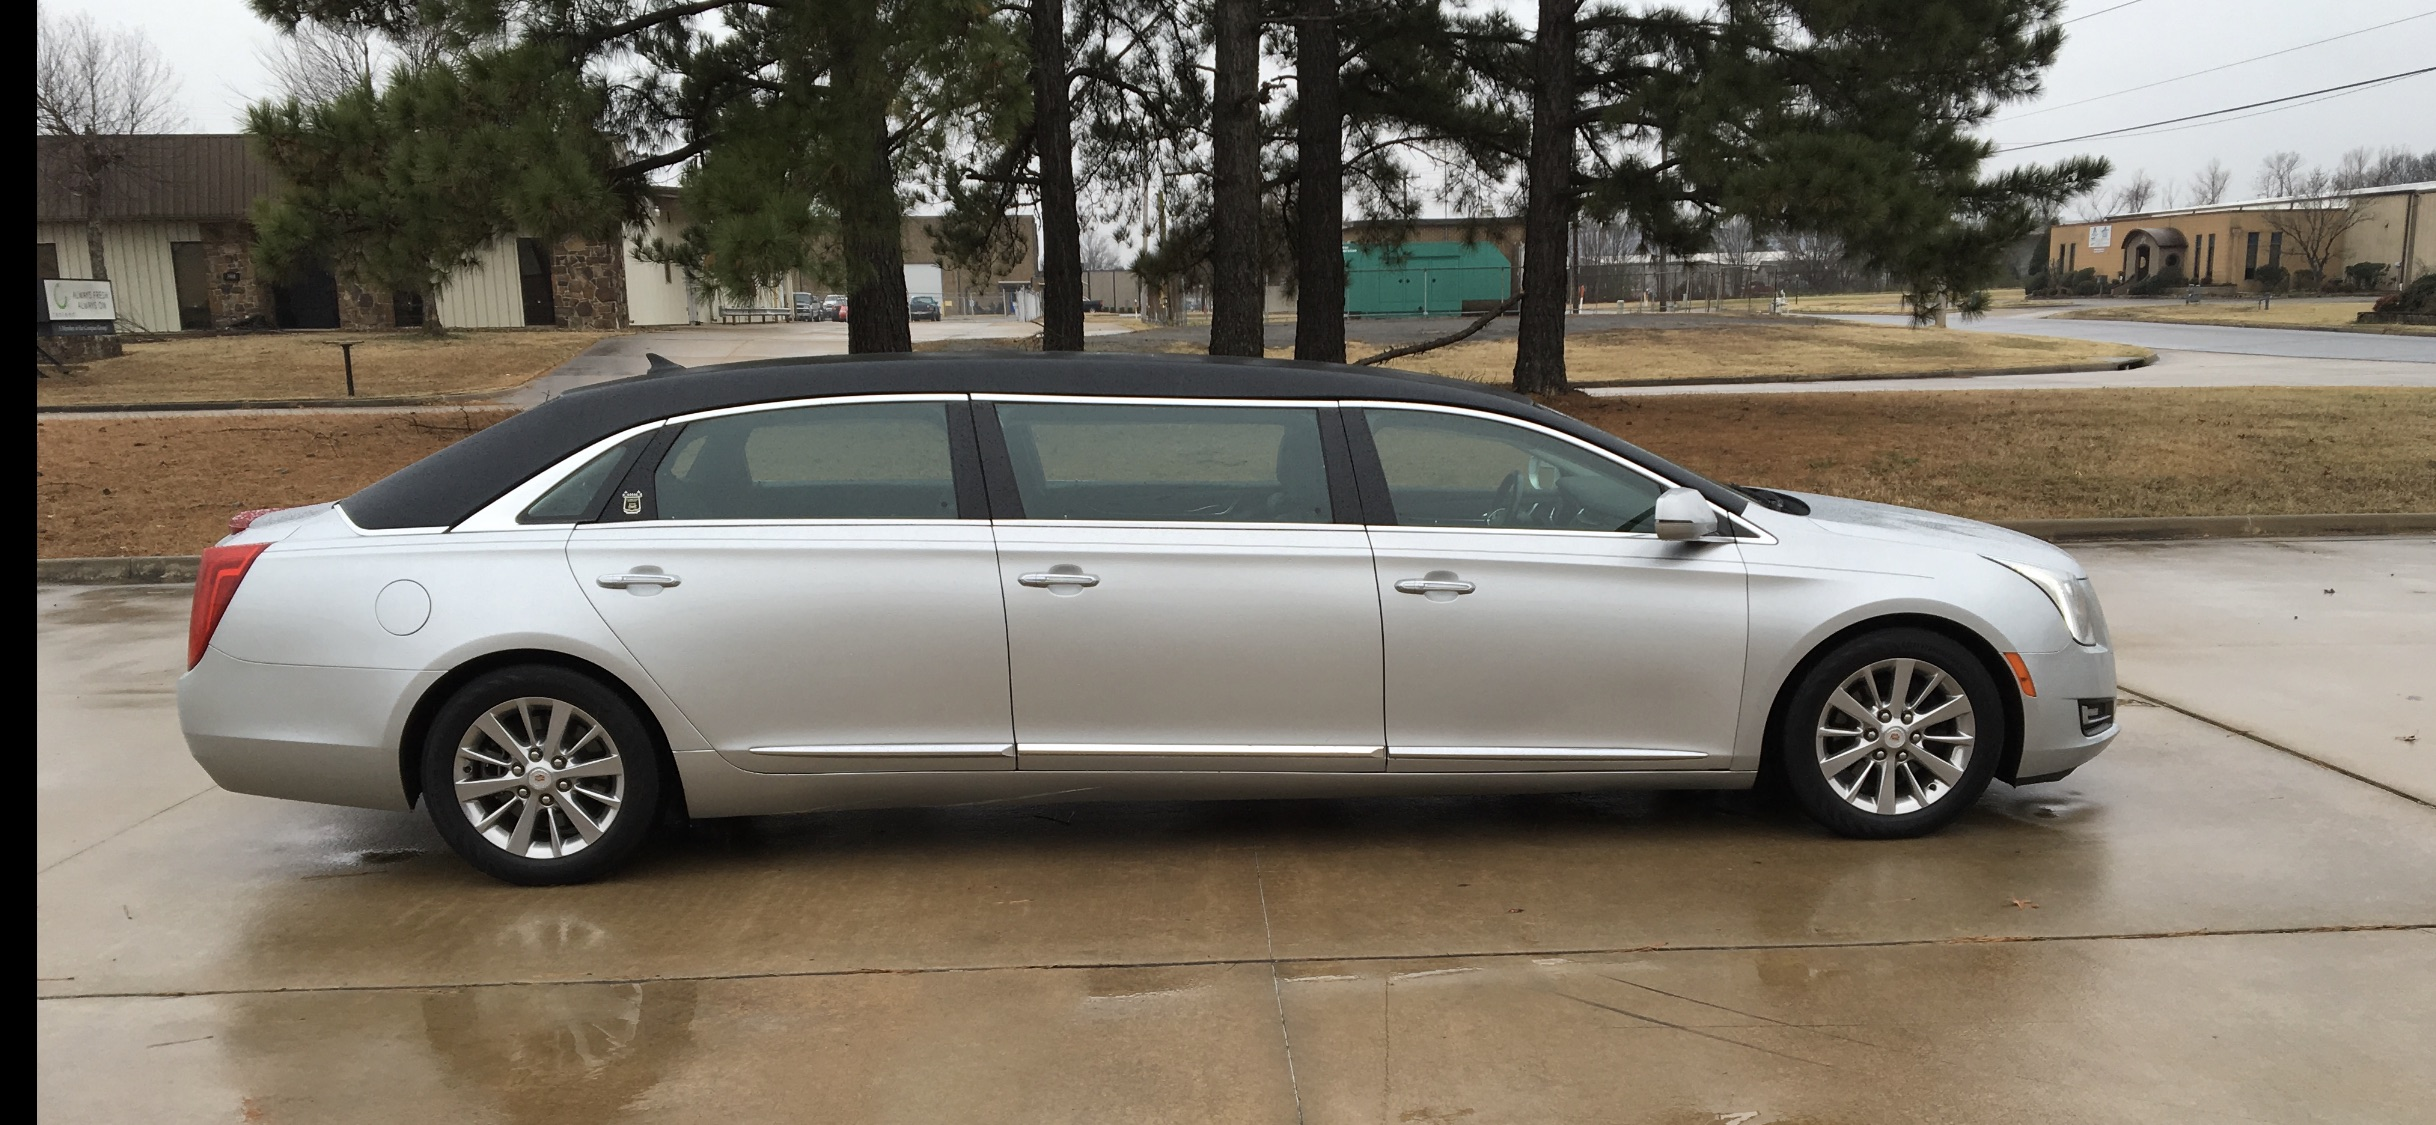 2013 Cadillac Six Door Limo for Sale 1